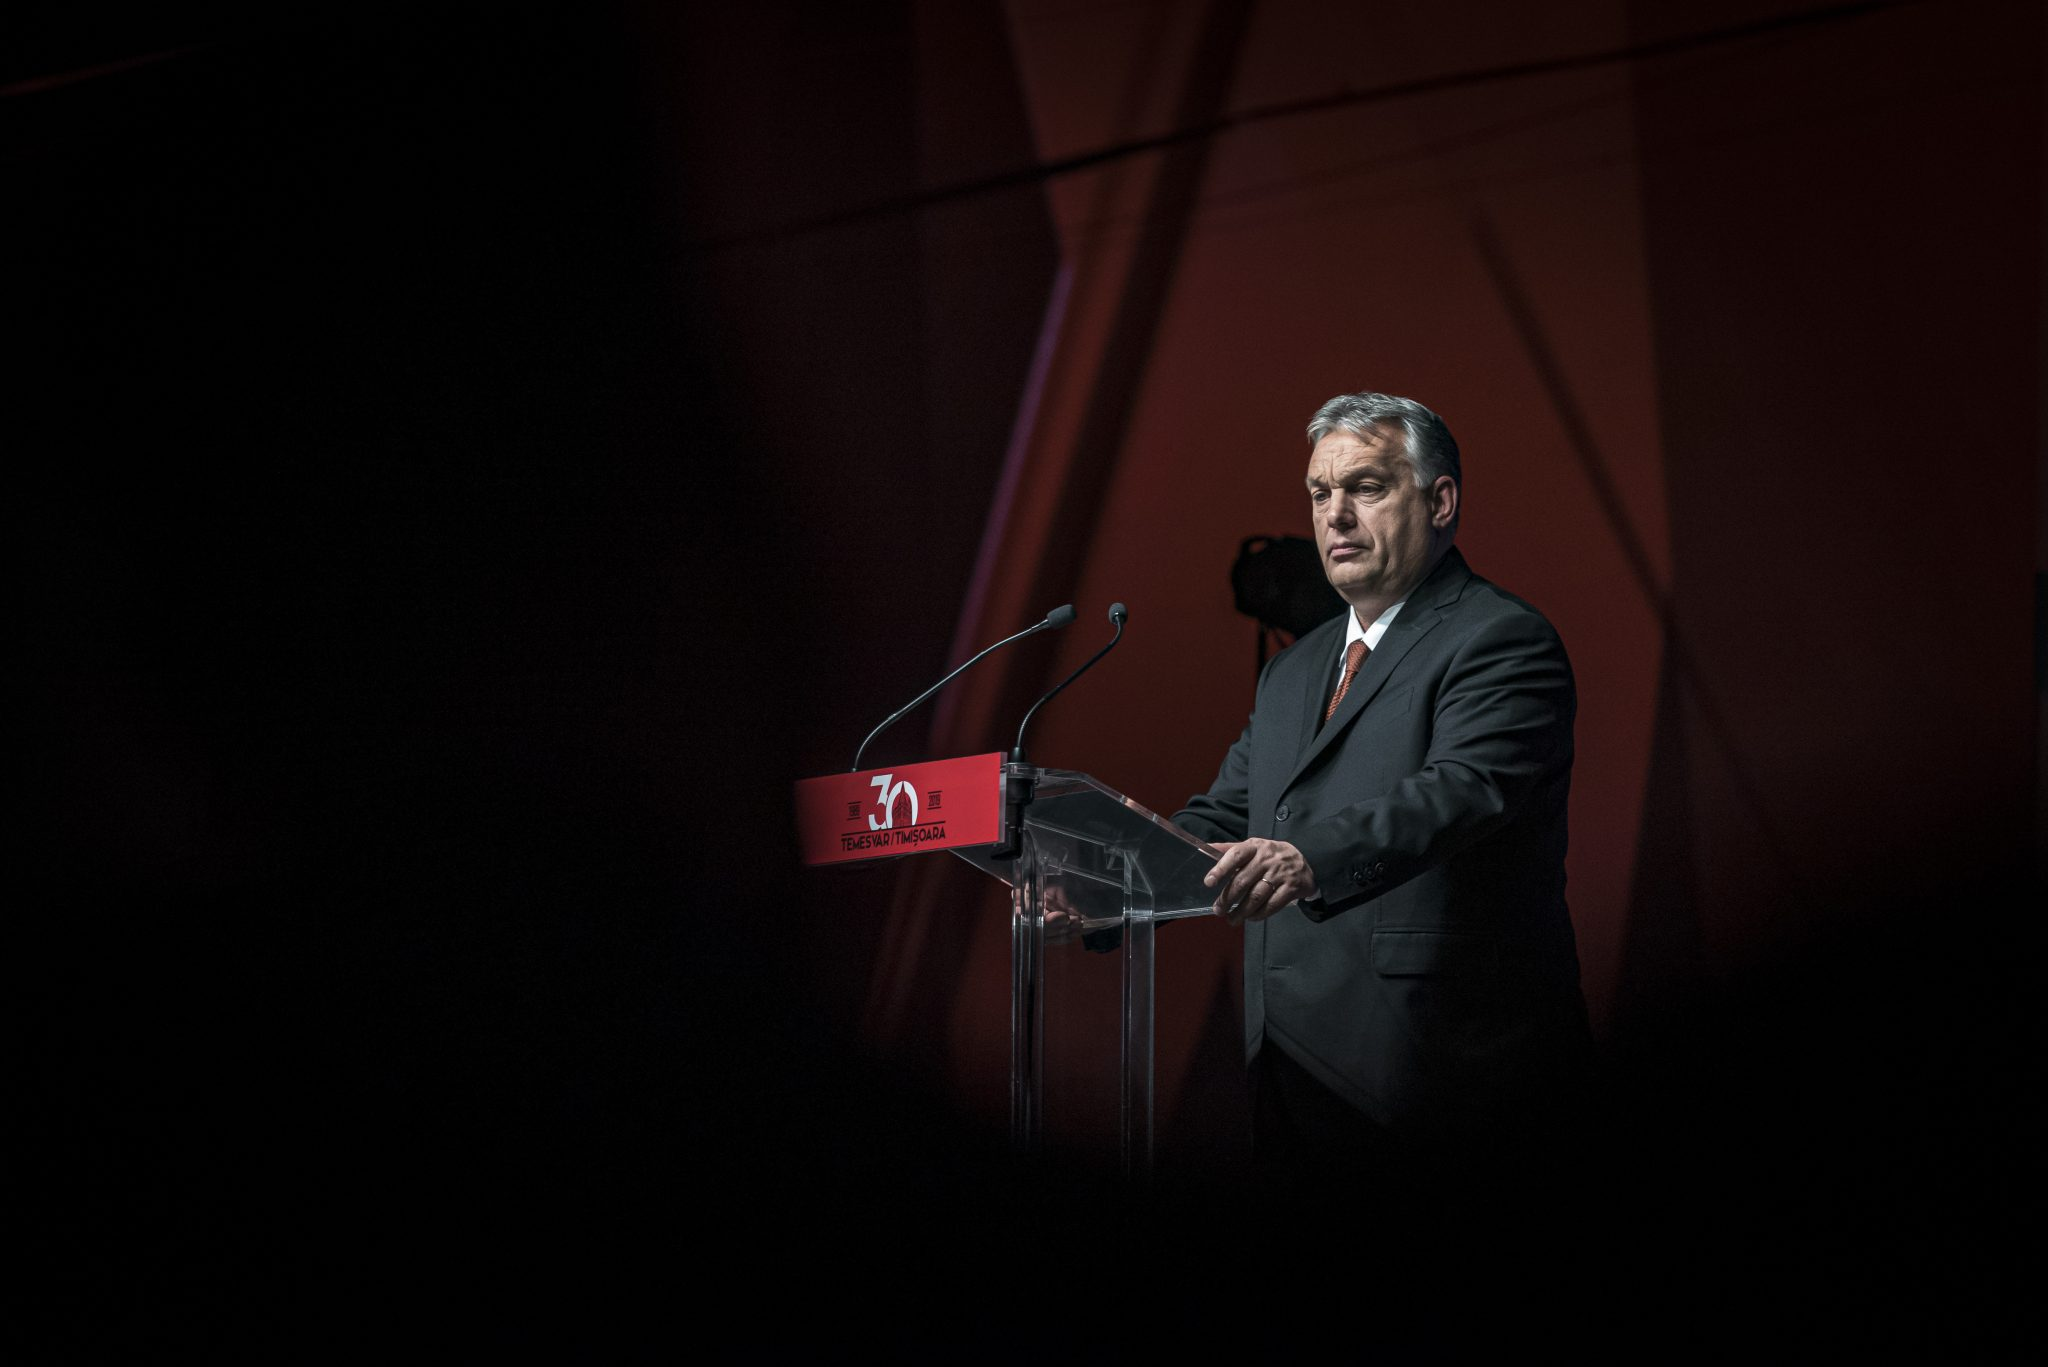 Orbán on Temesvár Revolution: Hungarians and Romanians 'Wanted to Live Free and Had Heroes Giving Their Blood for that Cause'